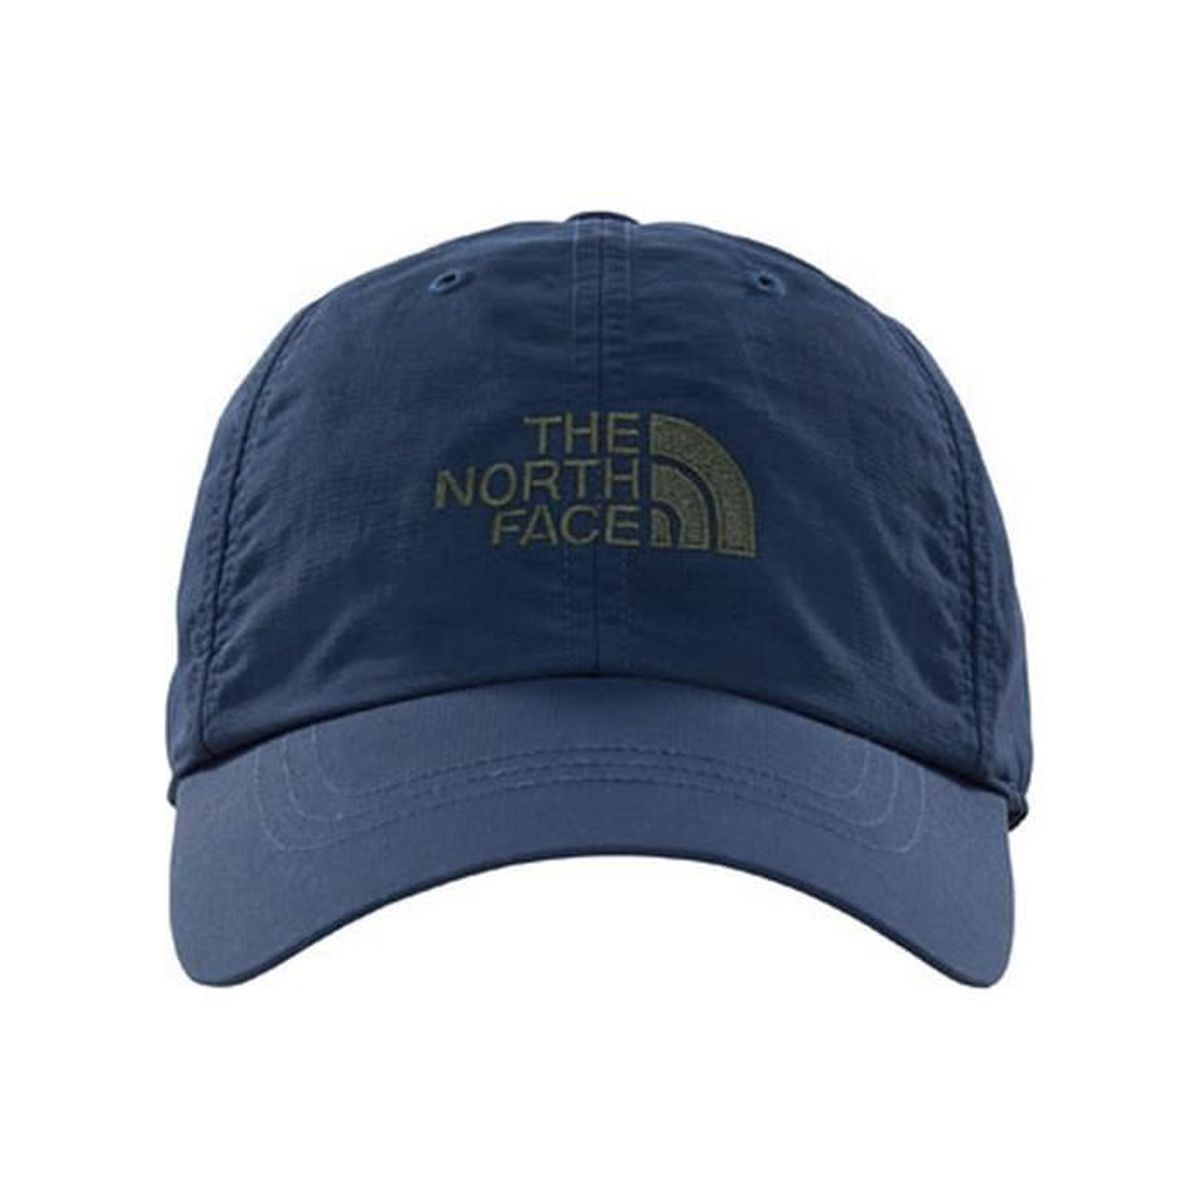 CASQUETTE THE NORTH FACE URBAN NAVY aille Standard BLEU - Achat ... ab2707ca4328